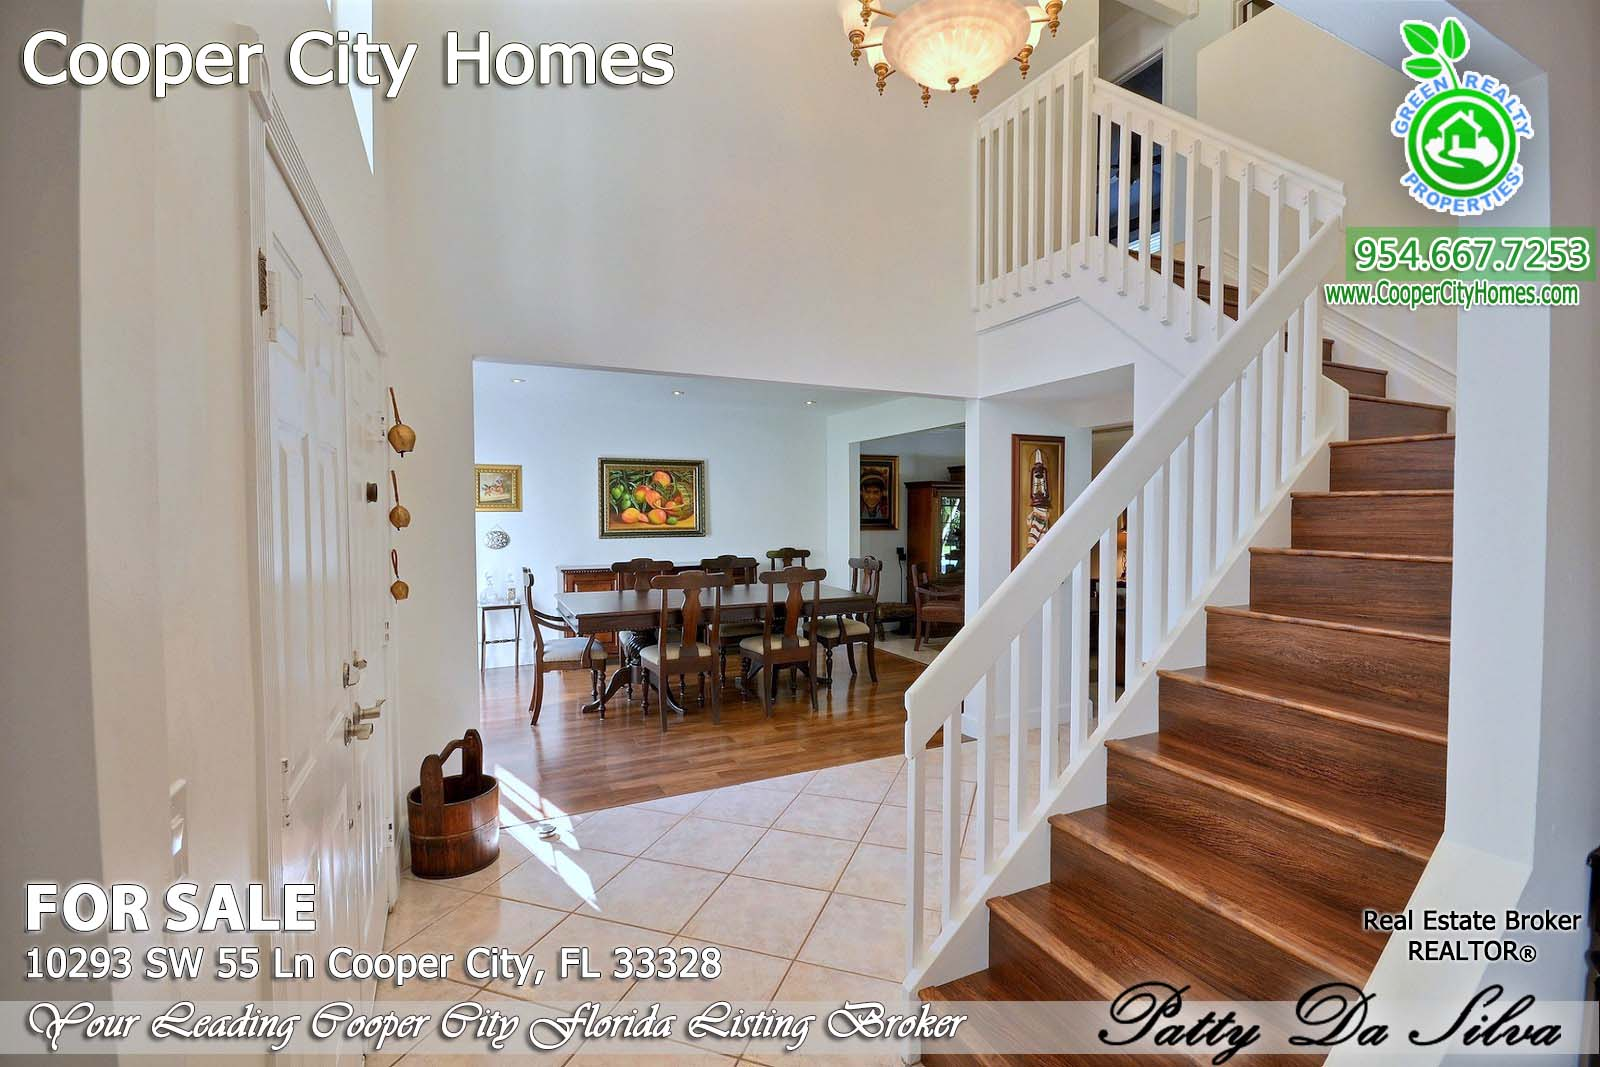 10293 - Cooper City Homes For Sale (21)